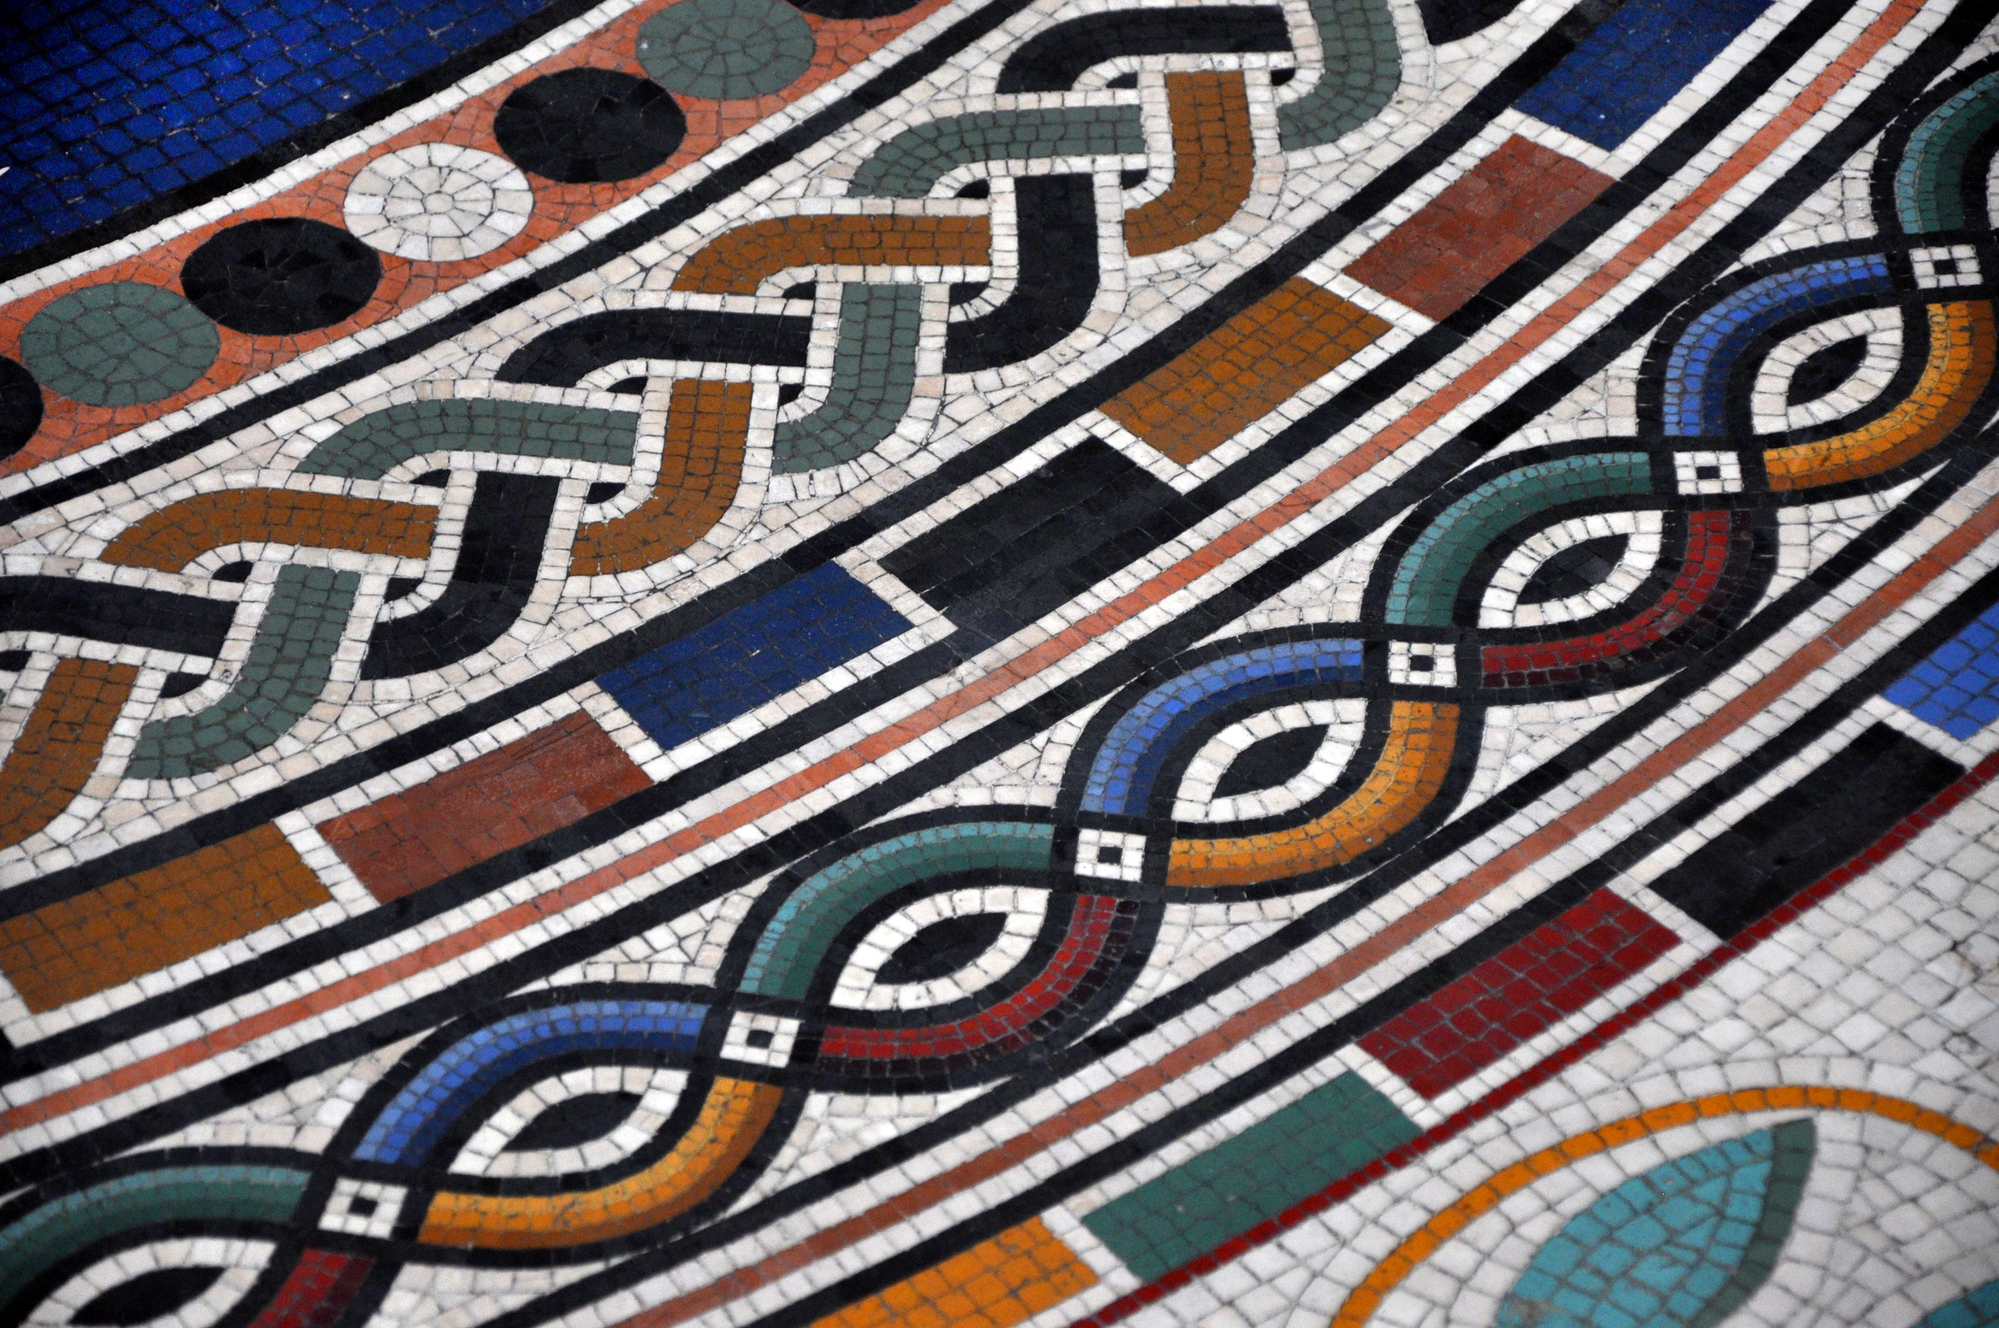 Detail of mosaic tiled floor